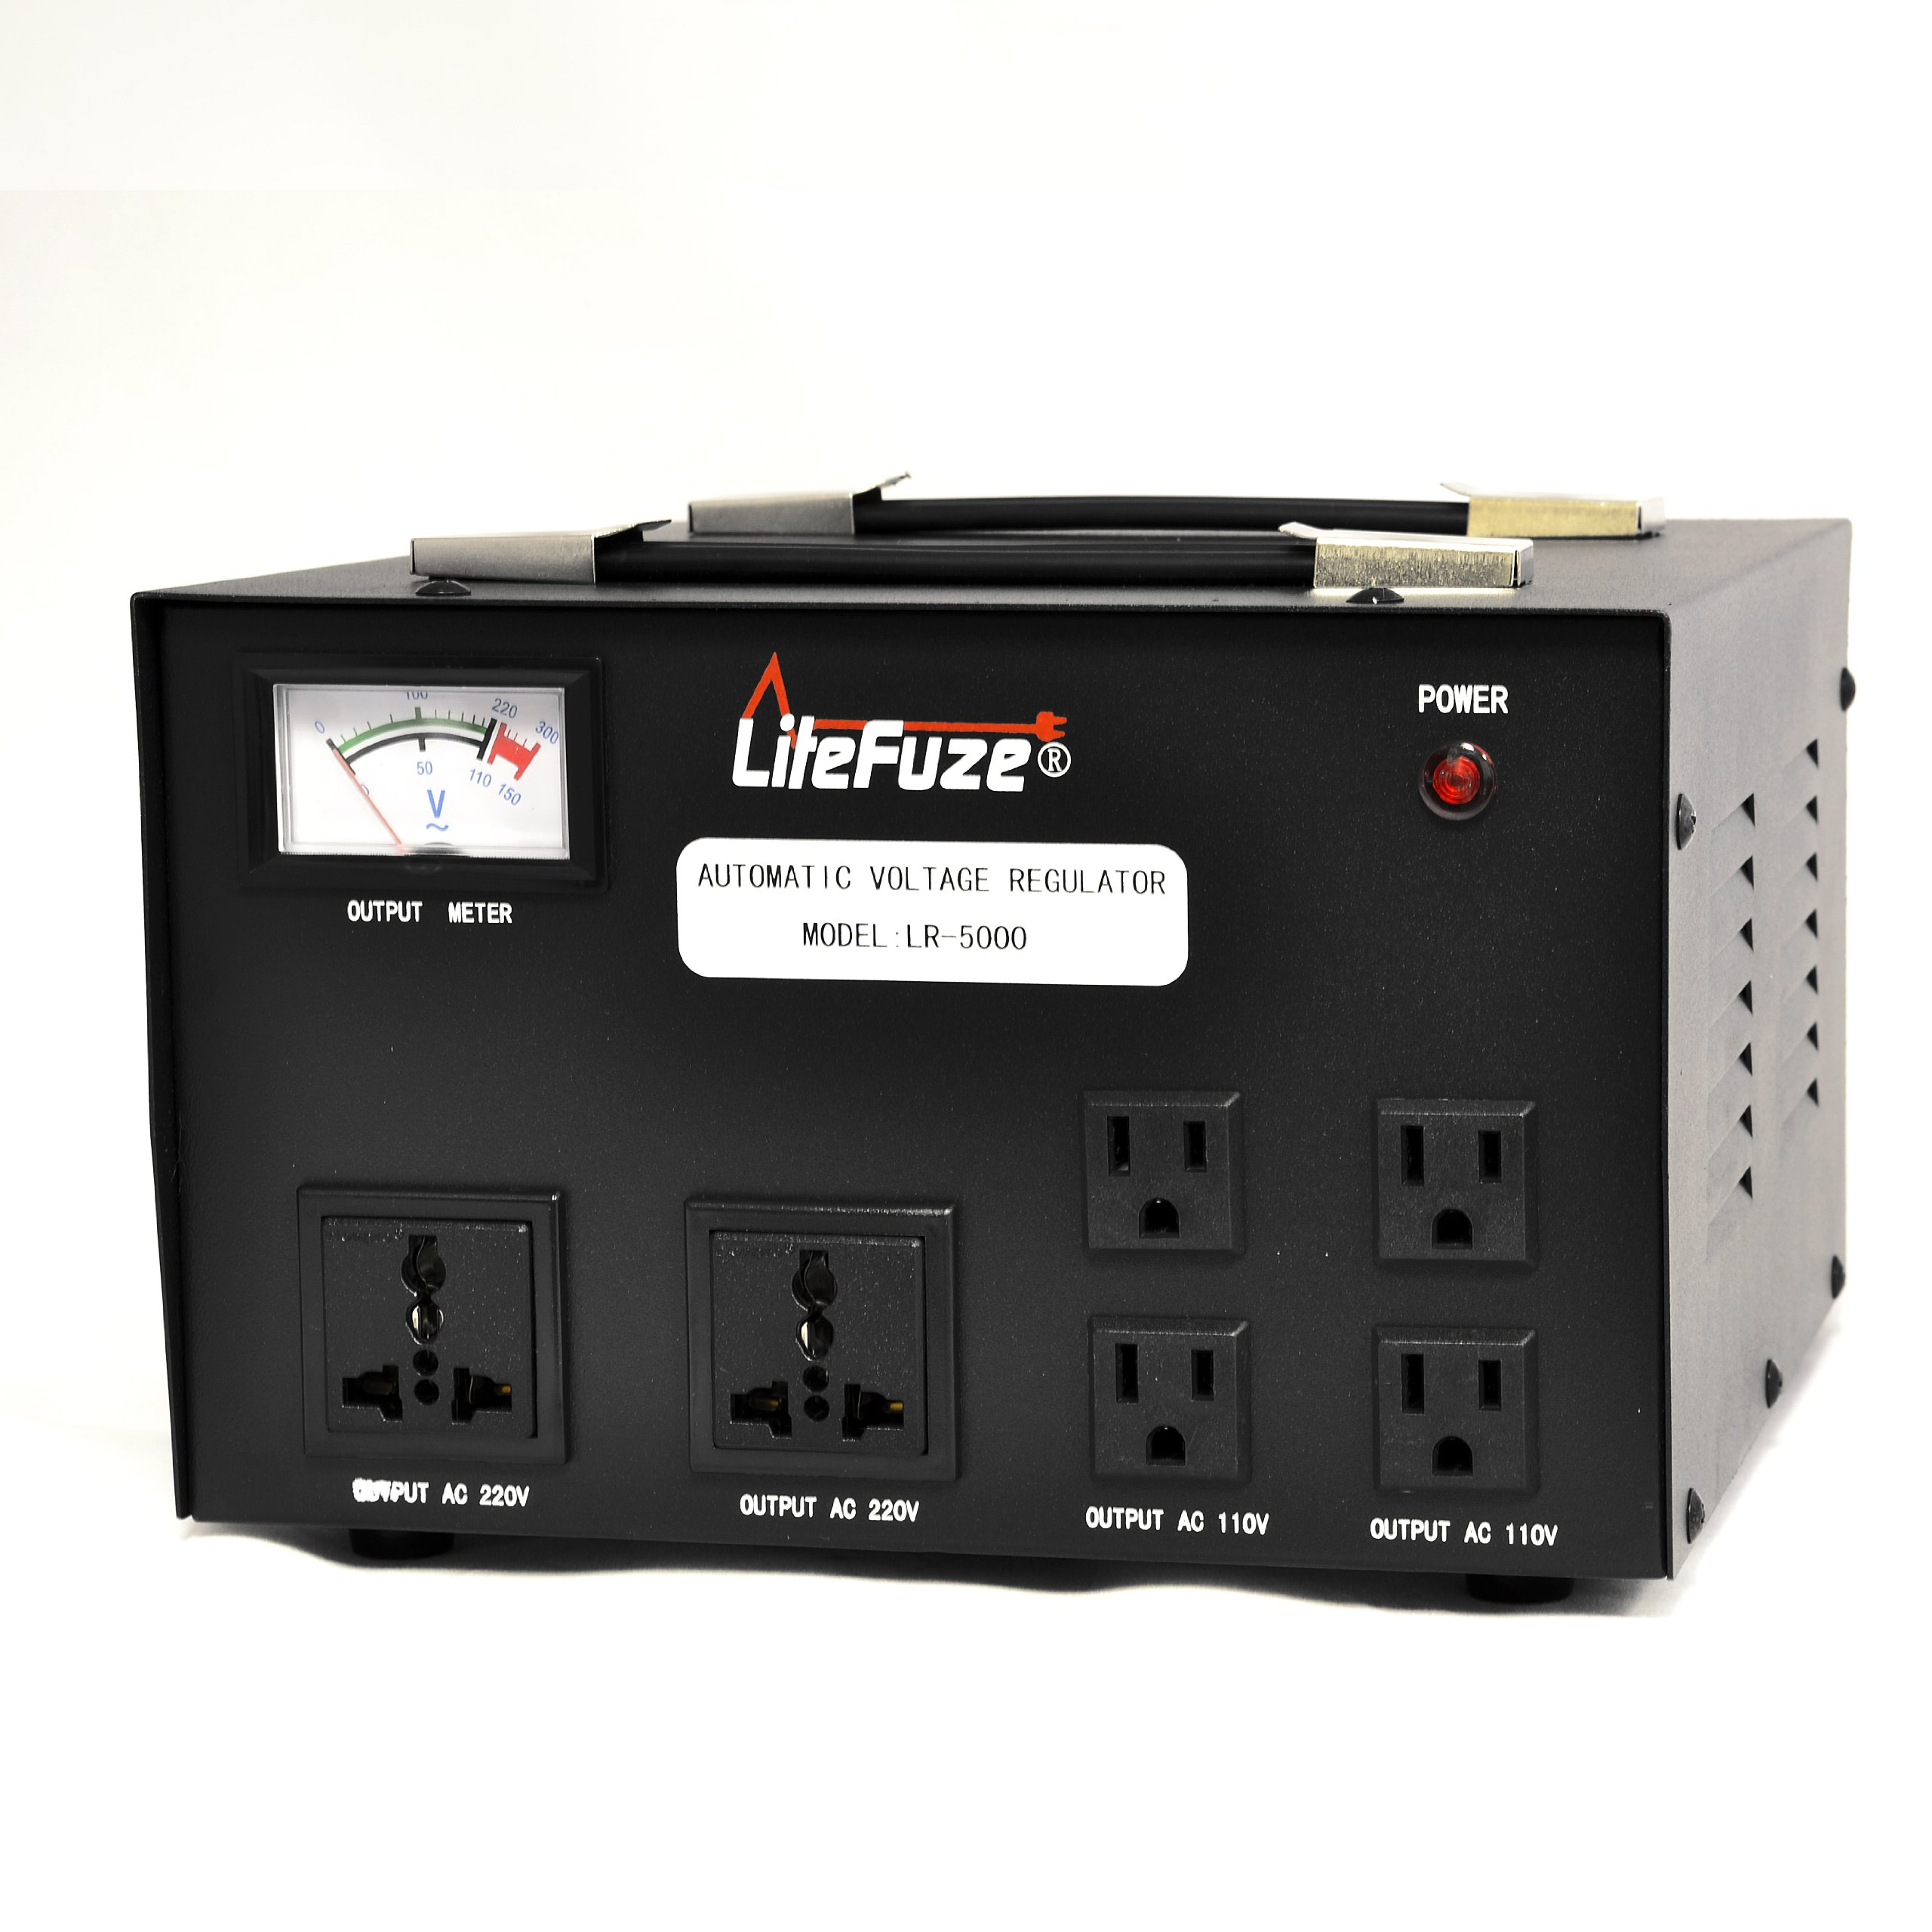 LiteFuze 5000 Watt Voltage Converter Transformer Heavy Duty Regulator Meter - Step Up/Down - 110/120/220/240 Volt - Fully Grounded Cord - Universal Output Sockets